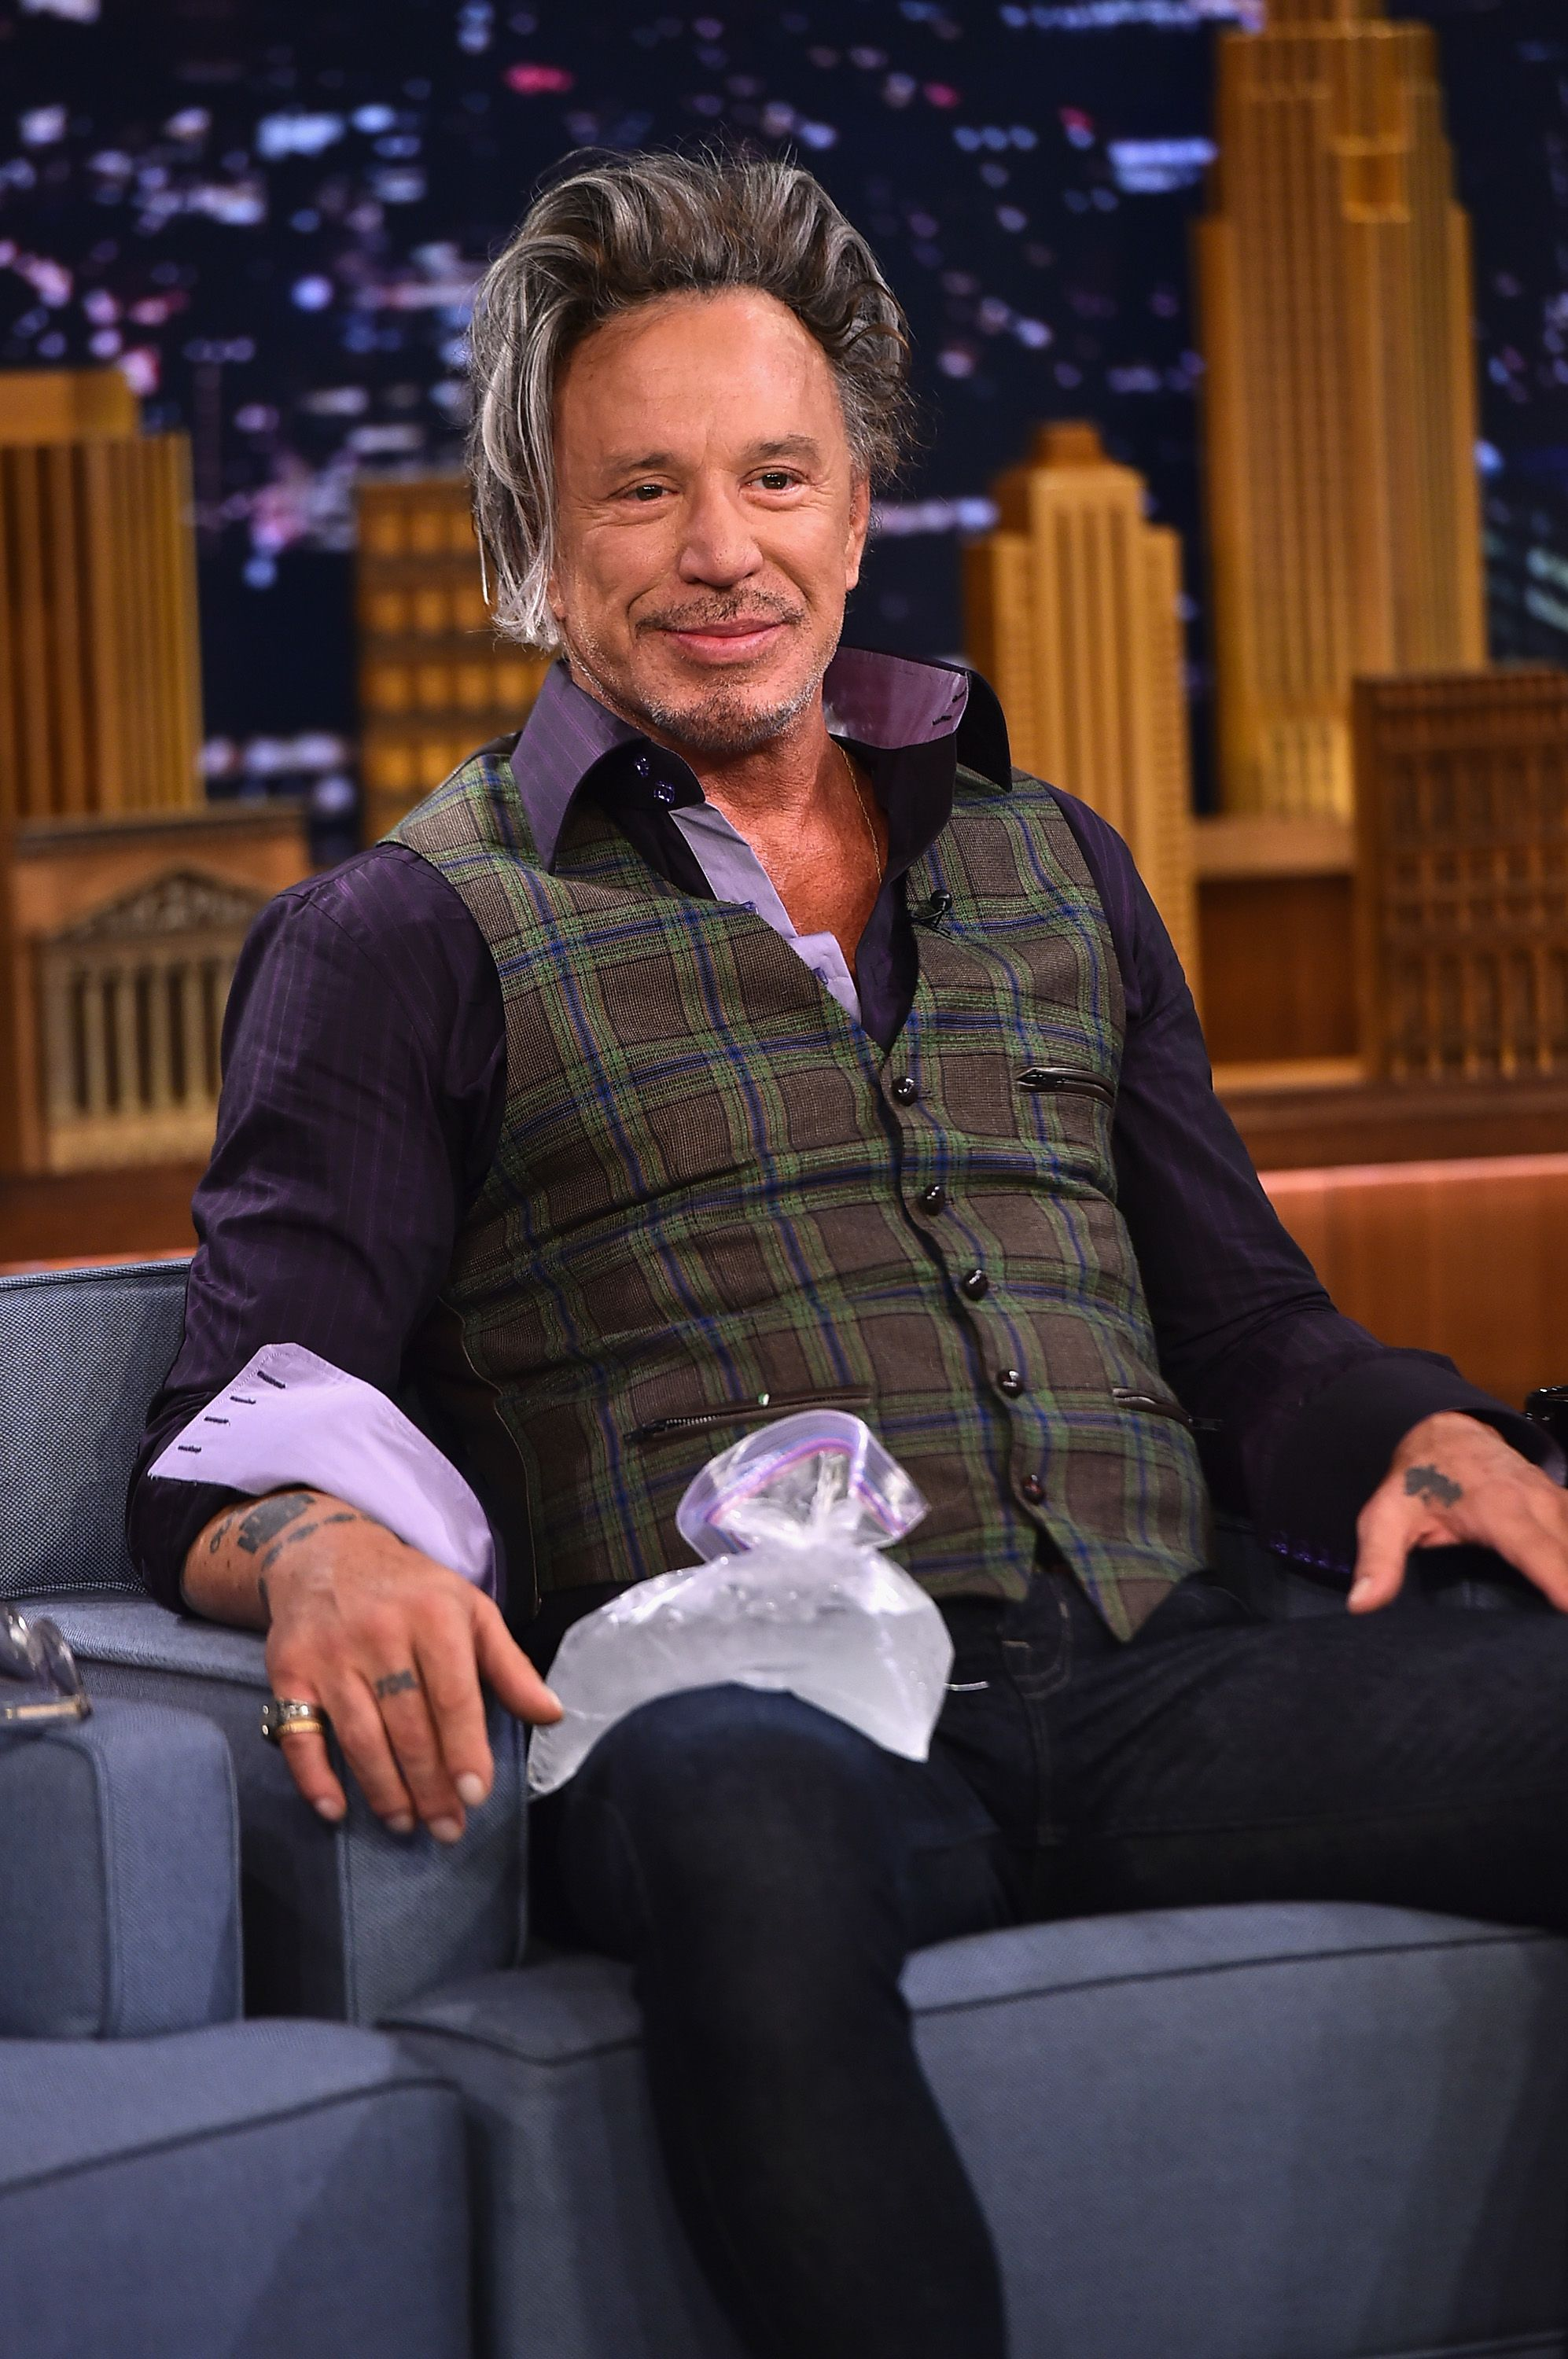 """Mickey Rourke at """"The Tonight Show starring Jimmy Fallon"""" at Rockefeller Center on August 12, 2014 